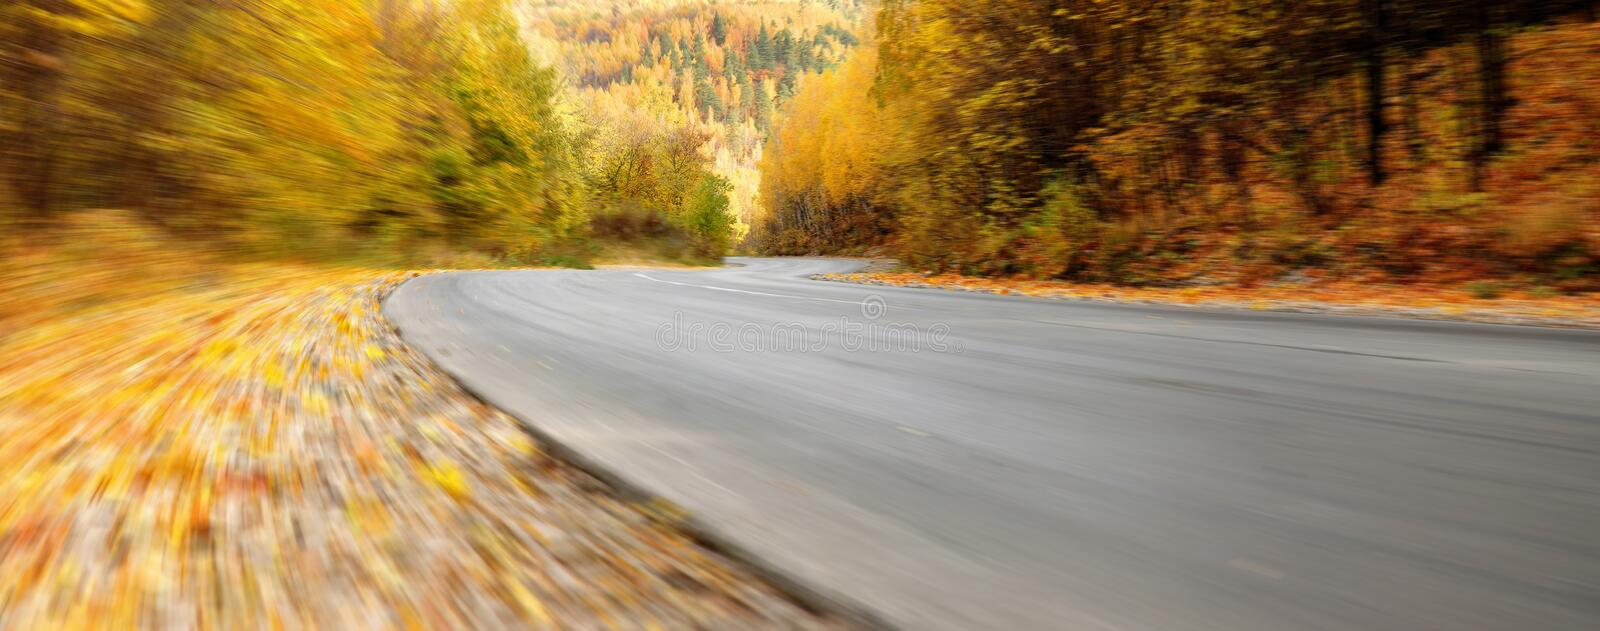 The road in the autumn forest. Panorama royalty free stock images